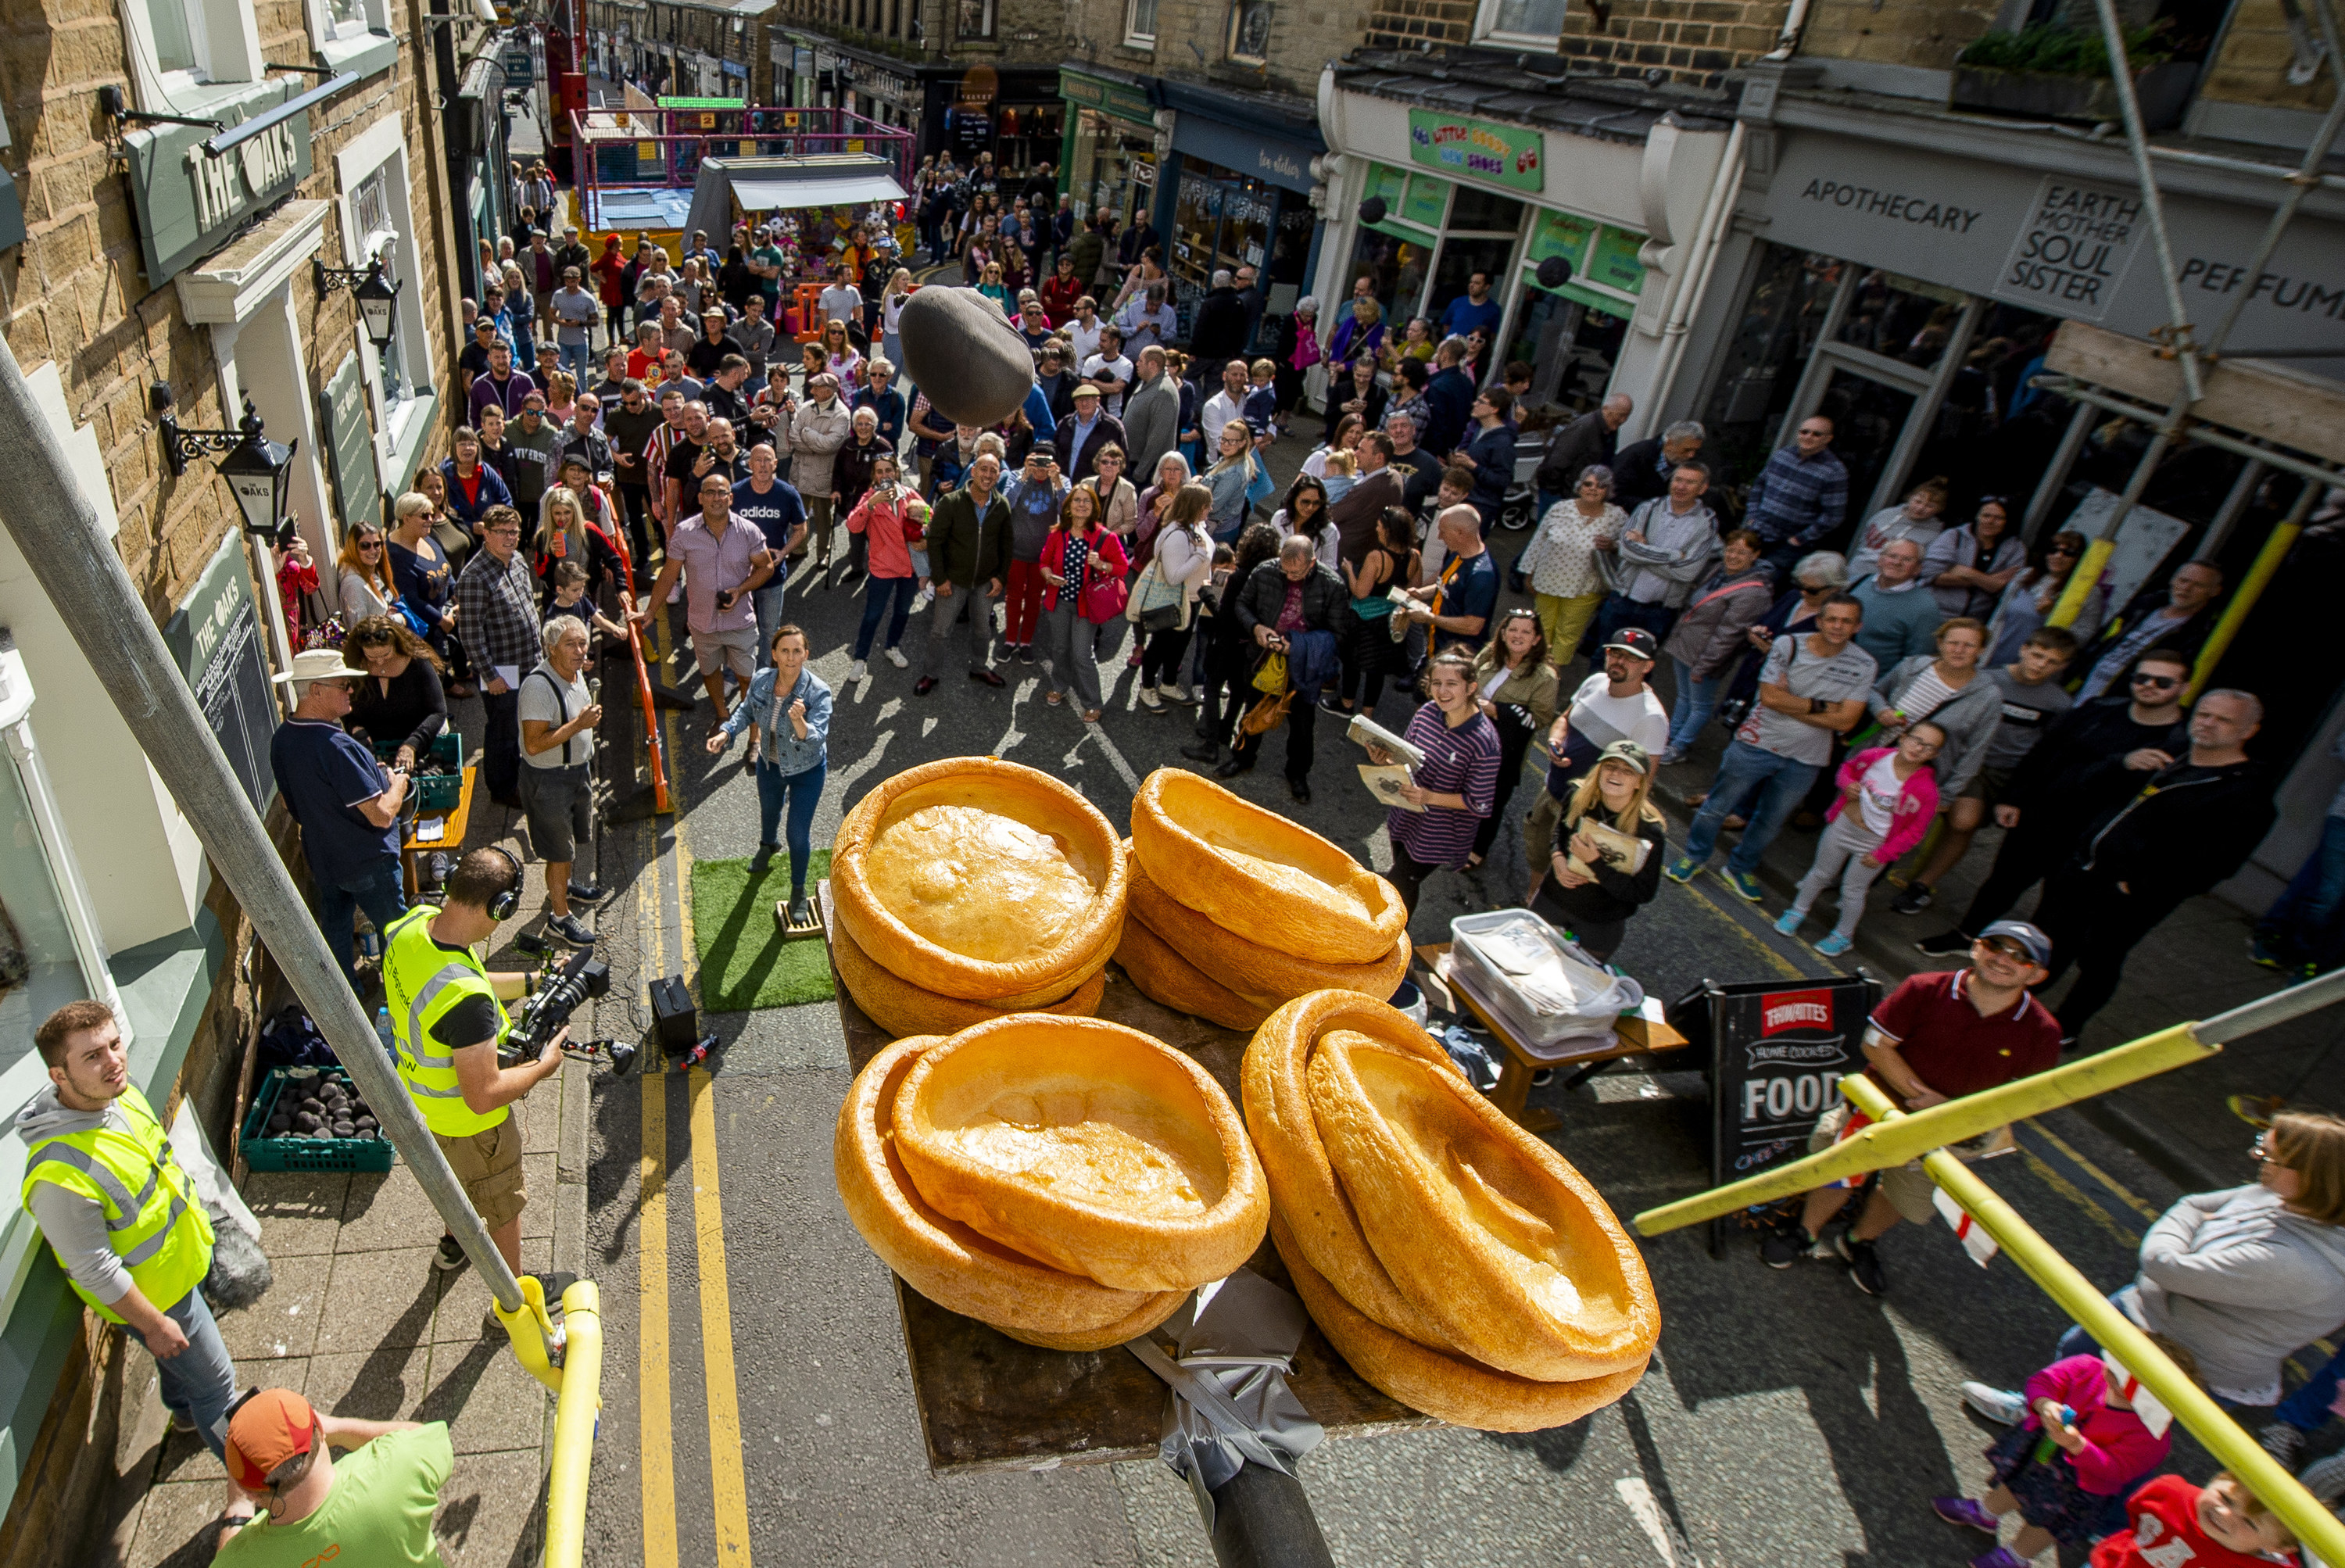 Four Yorkshire puddings on a scaffold with a crowd below throwing black pudding at them